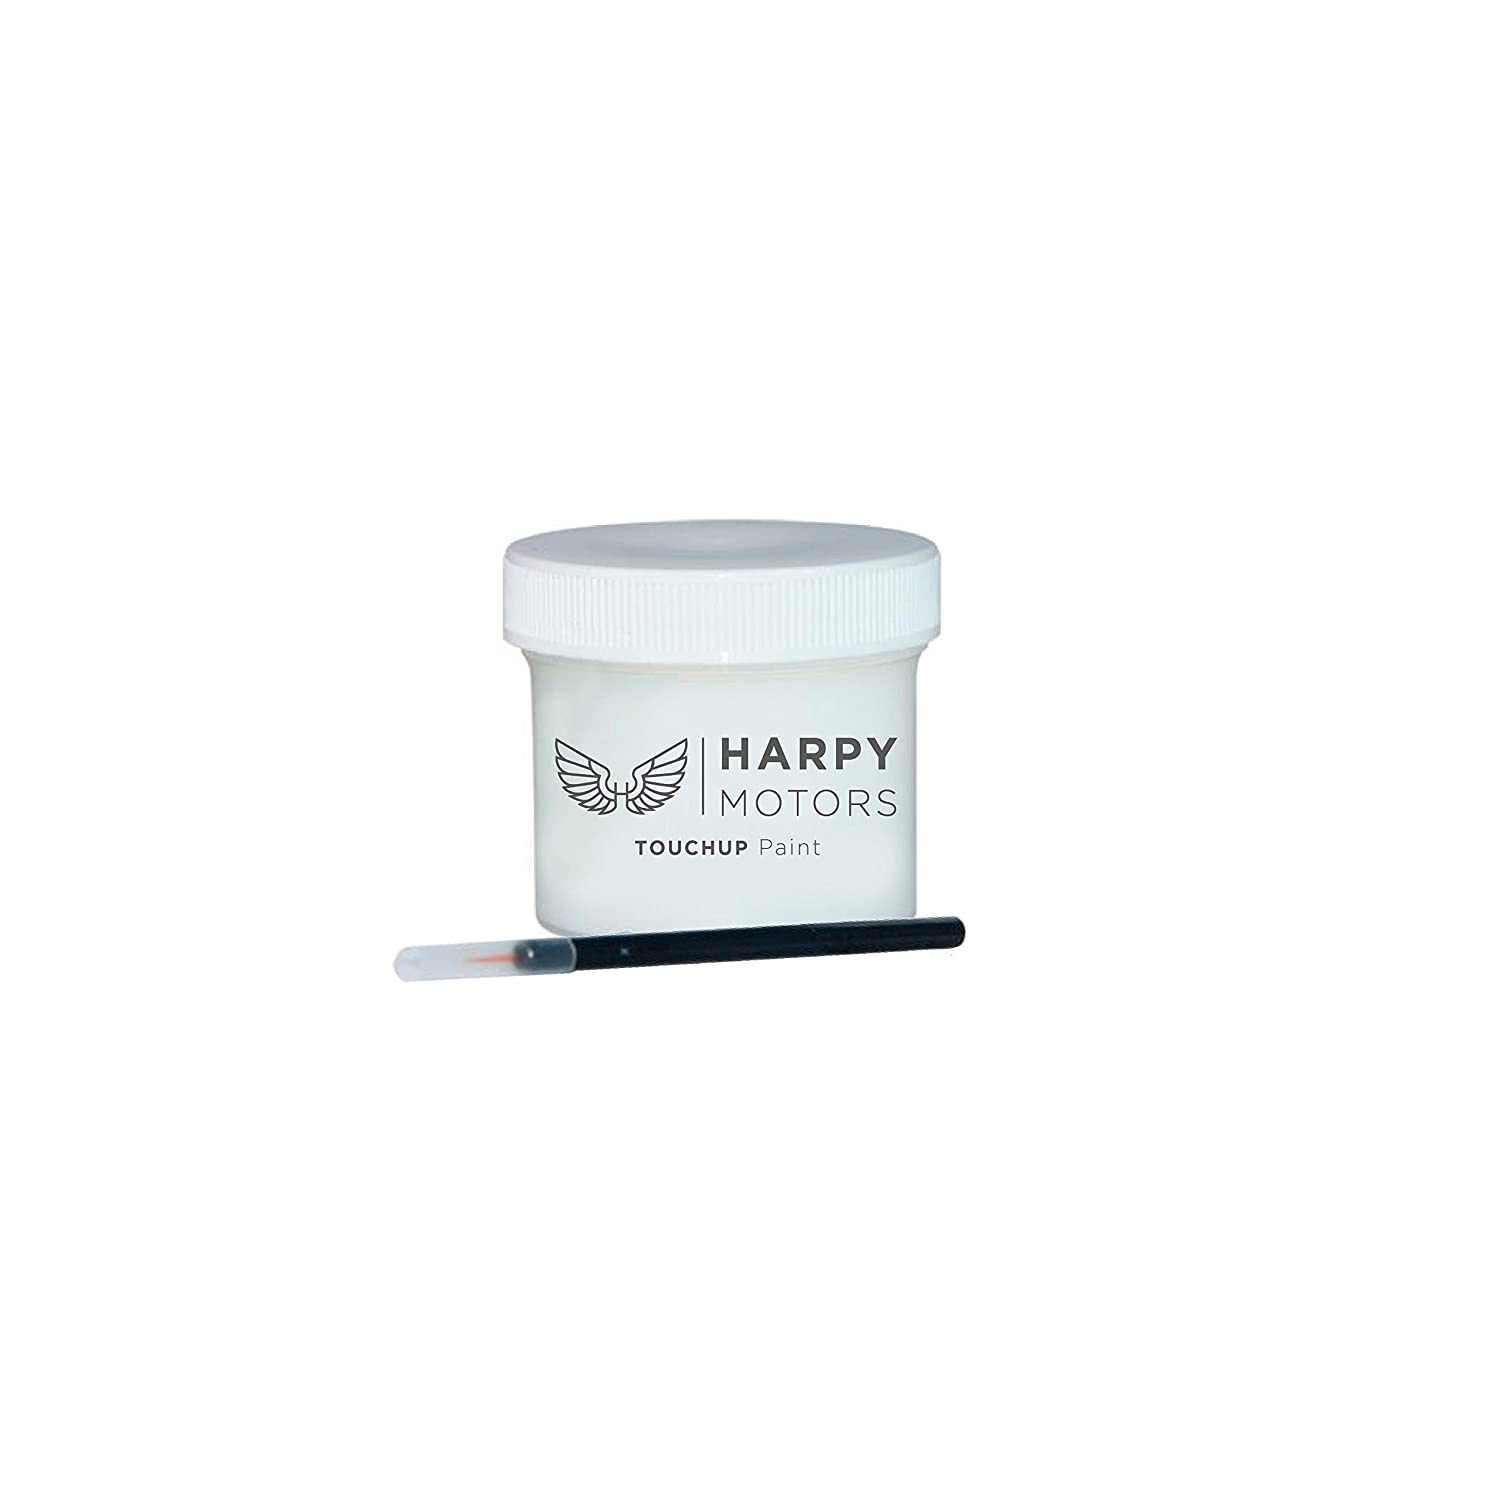 Harpy Motors 2015-2018 Honda Fit NH788P Orchid White Pearl Automotive 2oz Touch up Paint with Brush -Color Match Guaranteed